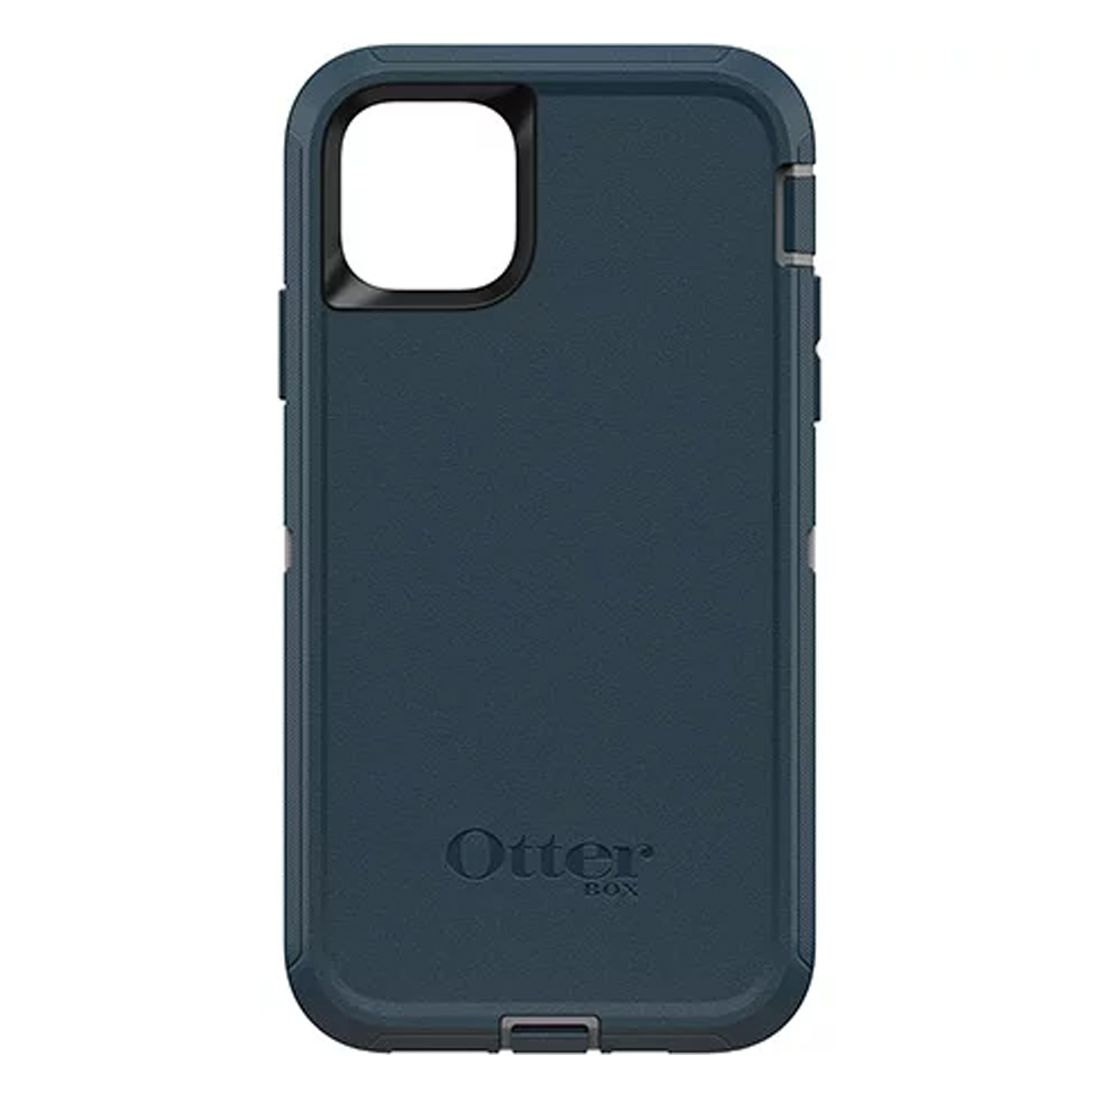 Otterbox Defender Case for Apple iPhone 11 Pro Max - Gone Fishin Blue